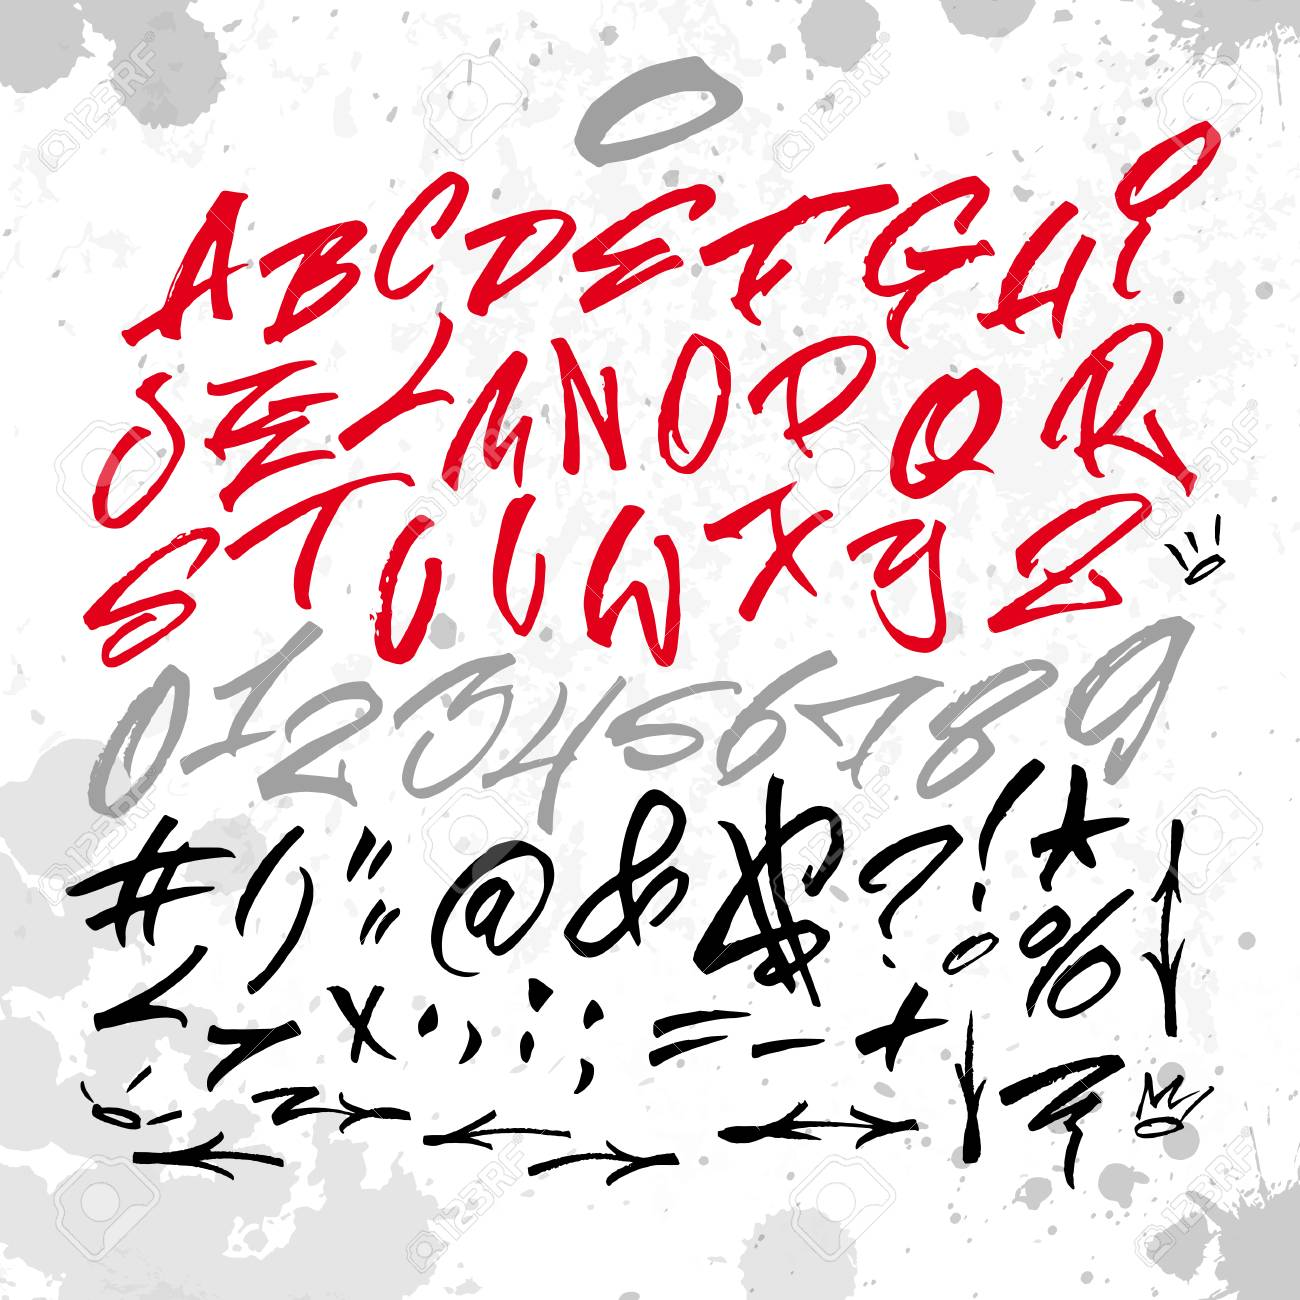 Handwritten Graffiti Font Alphabet Artistic Hip Hop Typography Collection Custom Vector Calligraphy Graphic Set